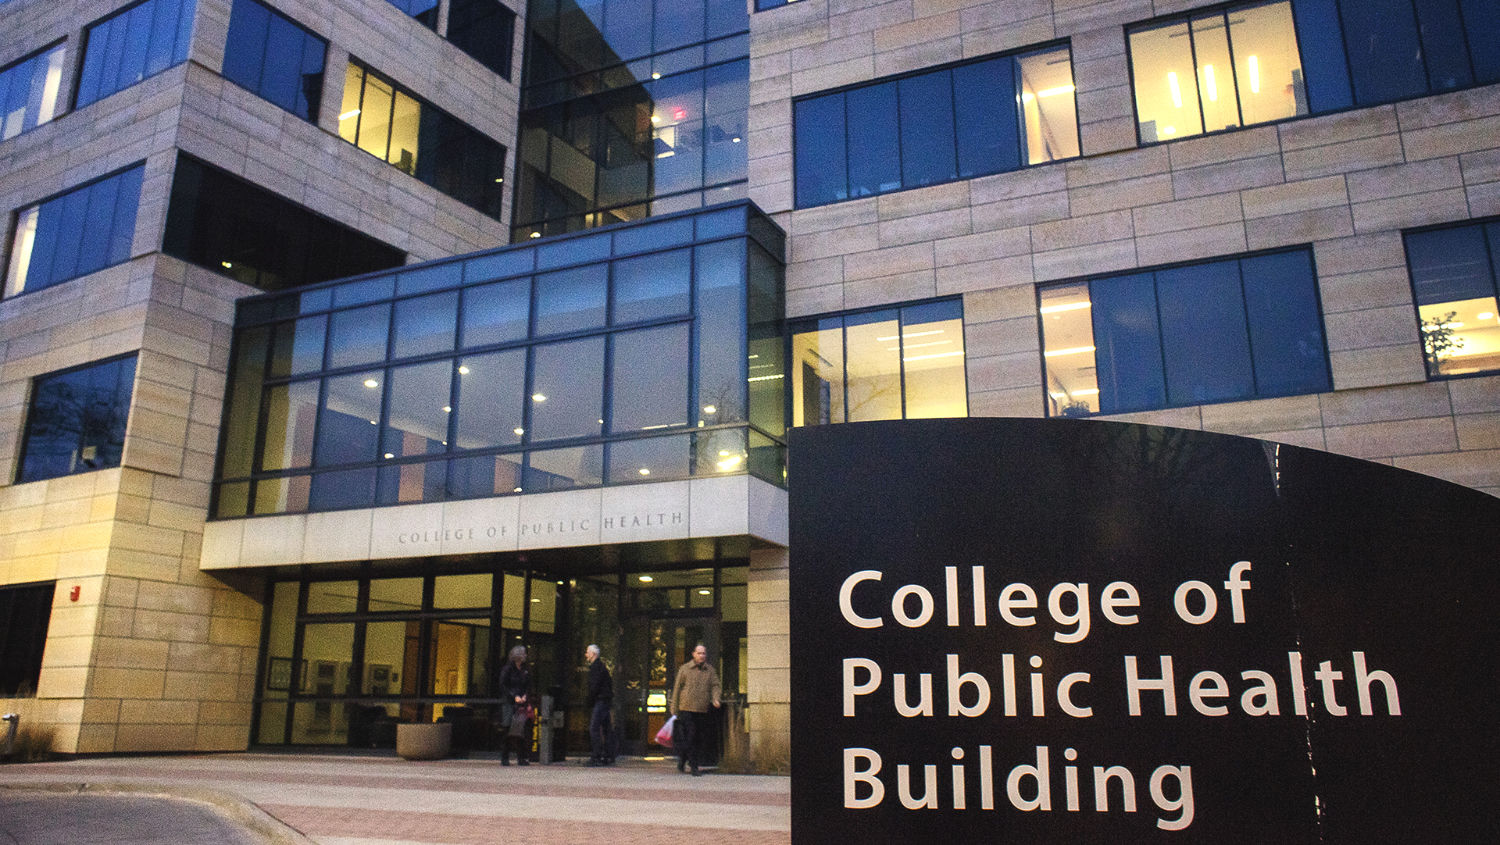 The College of Public Health Building as seen on Thursday, Dec. 14, 2017.